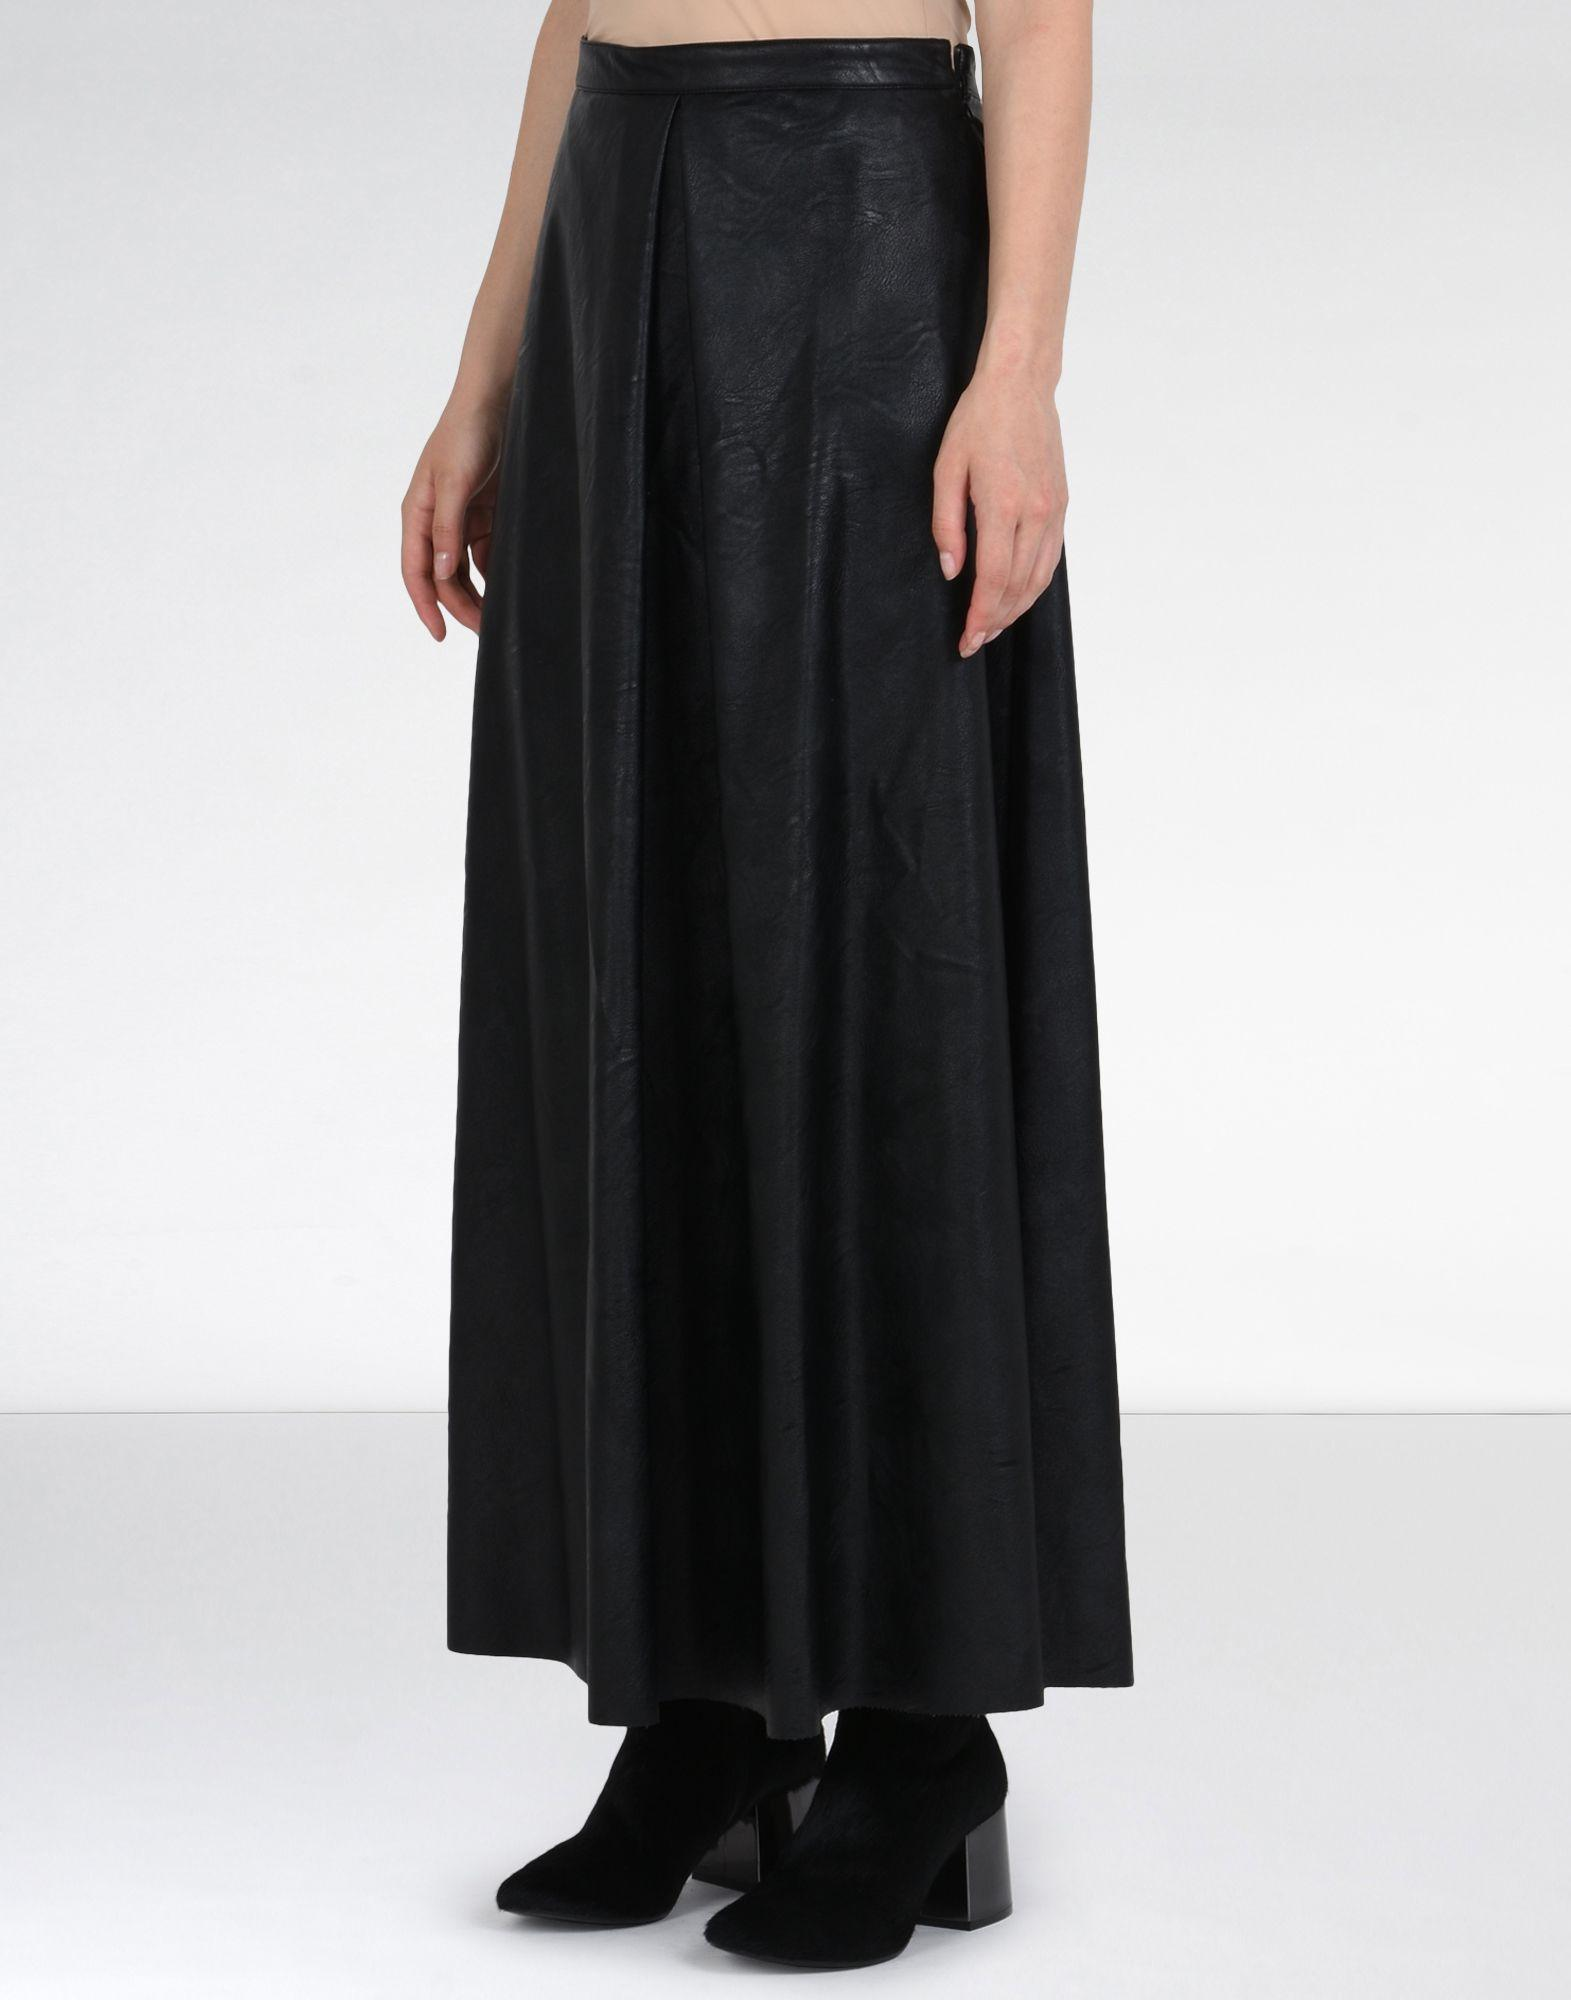 Mm6 by maison martin margiela Ankle Length Faux Leather Skirt in ...